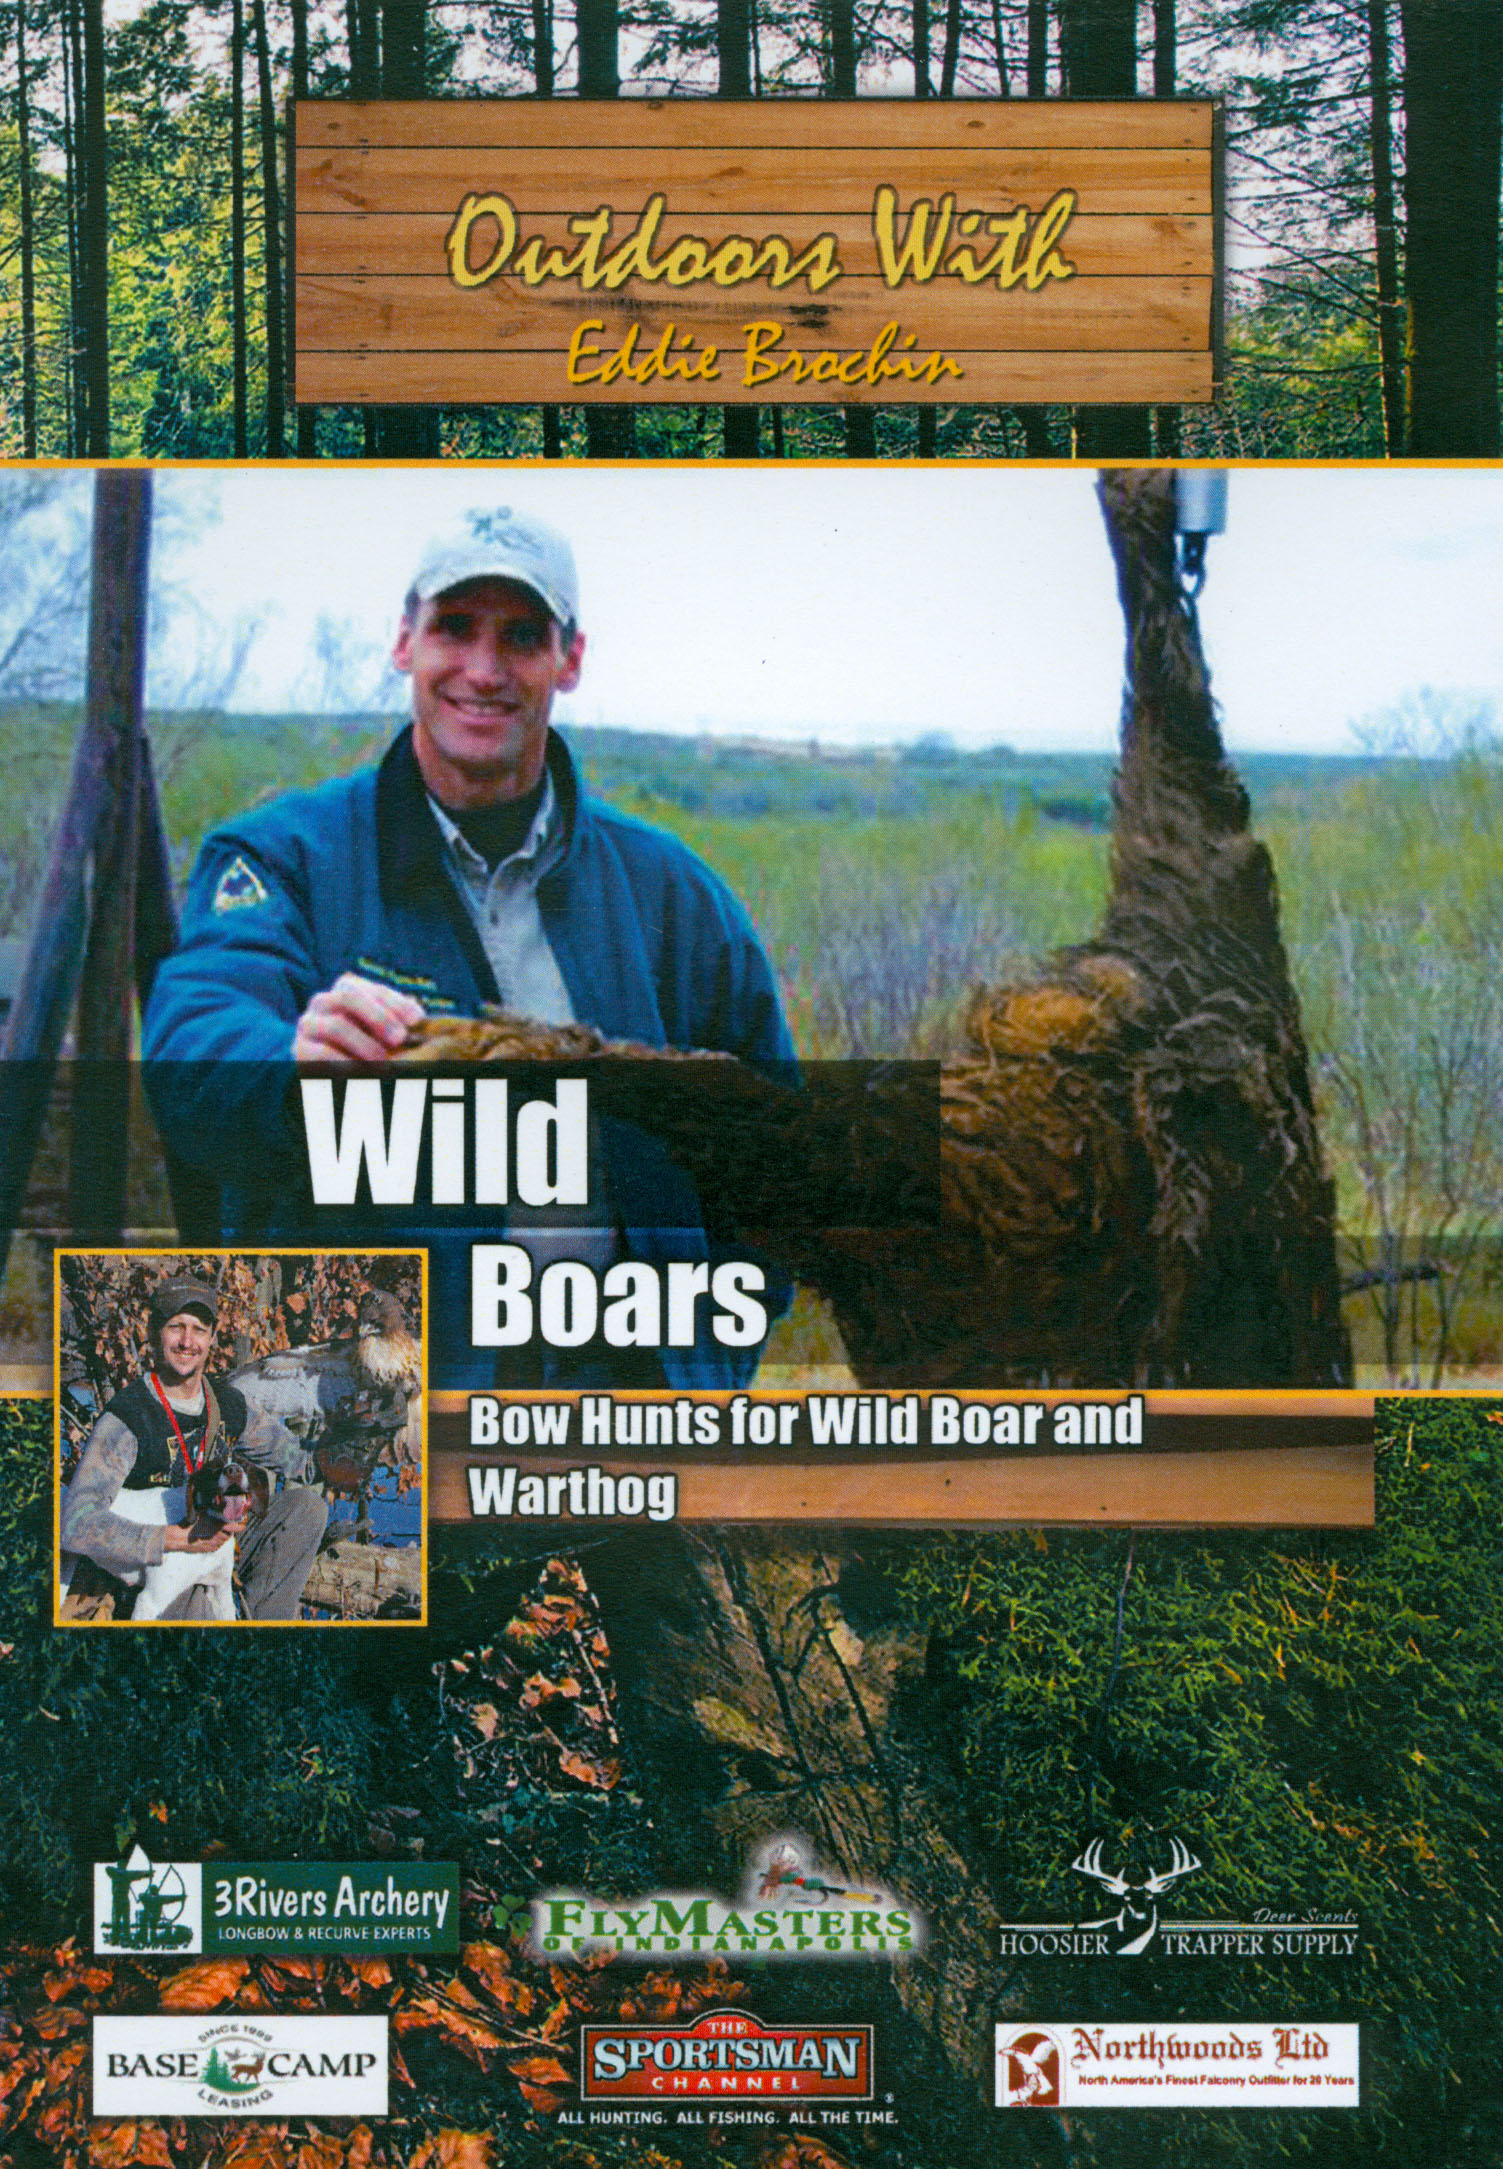 Outdoors With Eddie Brochin: Wild Boars